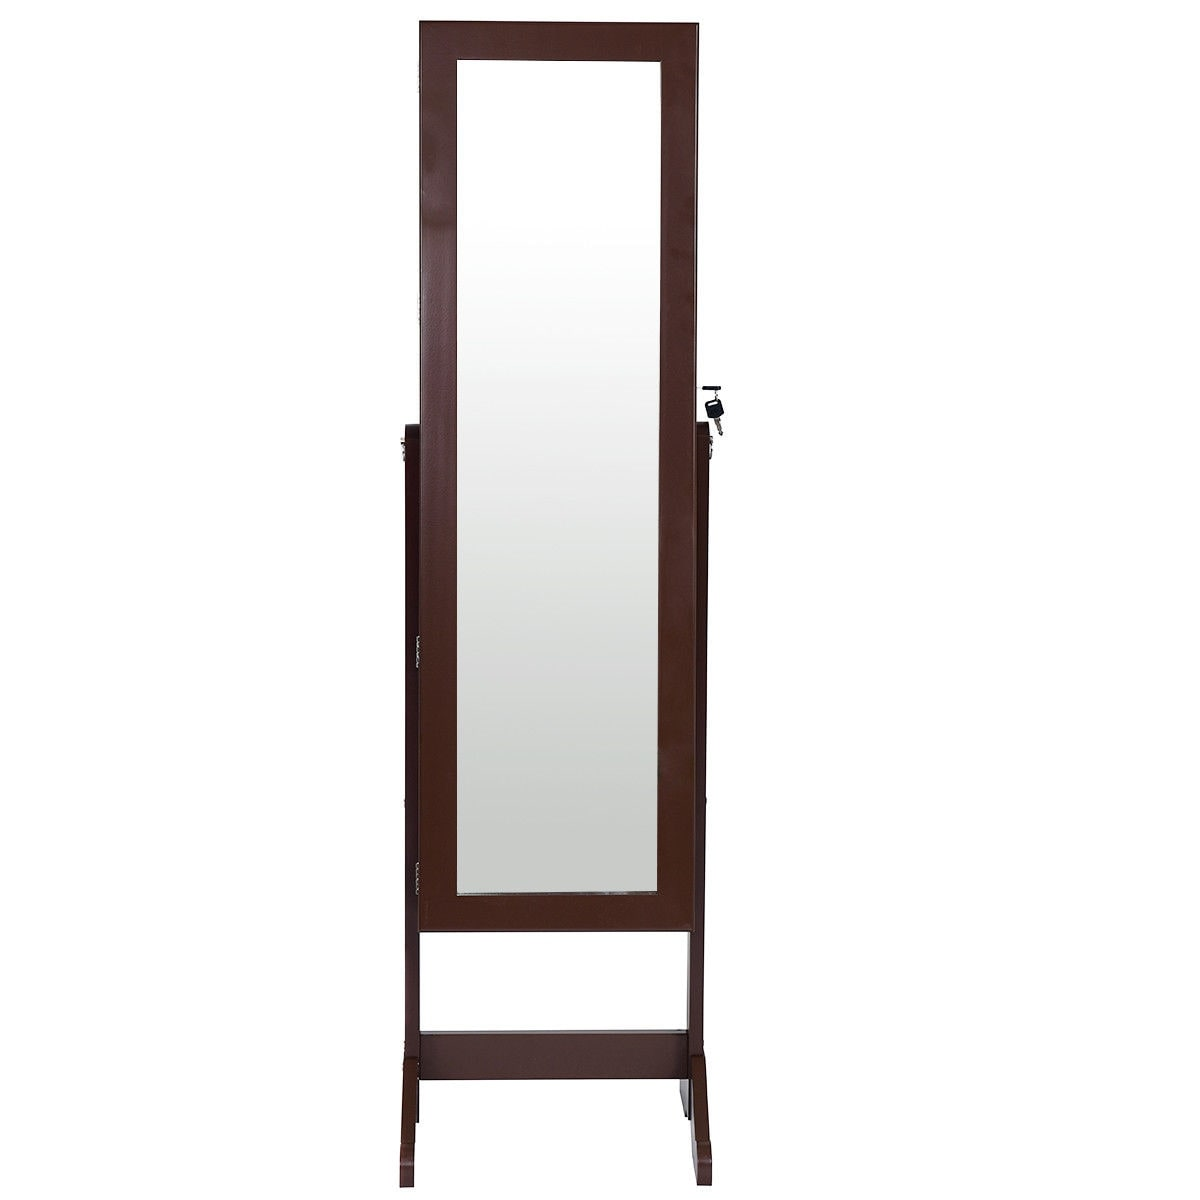 mirrored cabinet with mounted wall o armoire jewelry homegear storage black organizer stand door